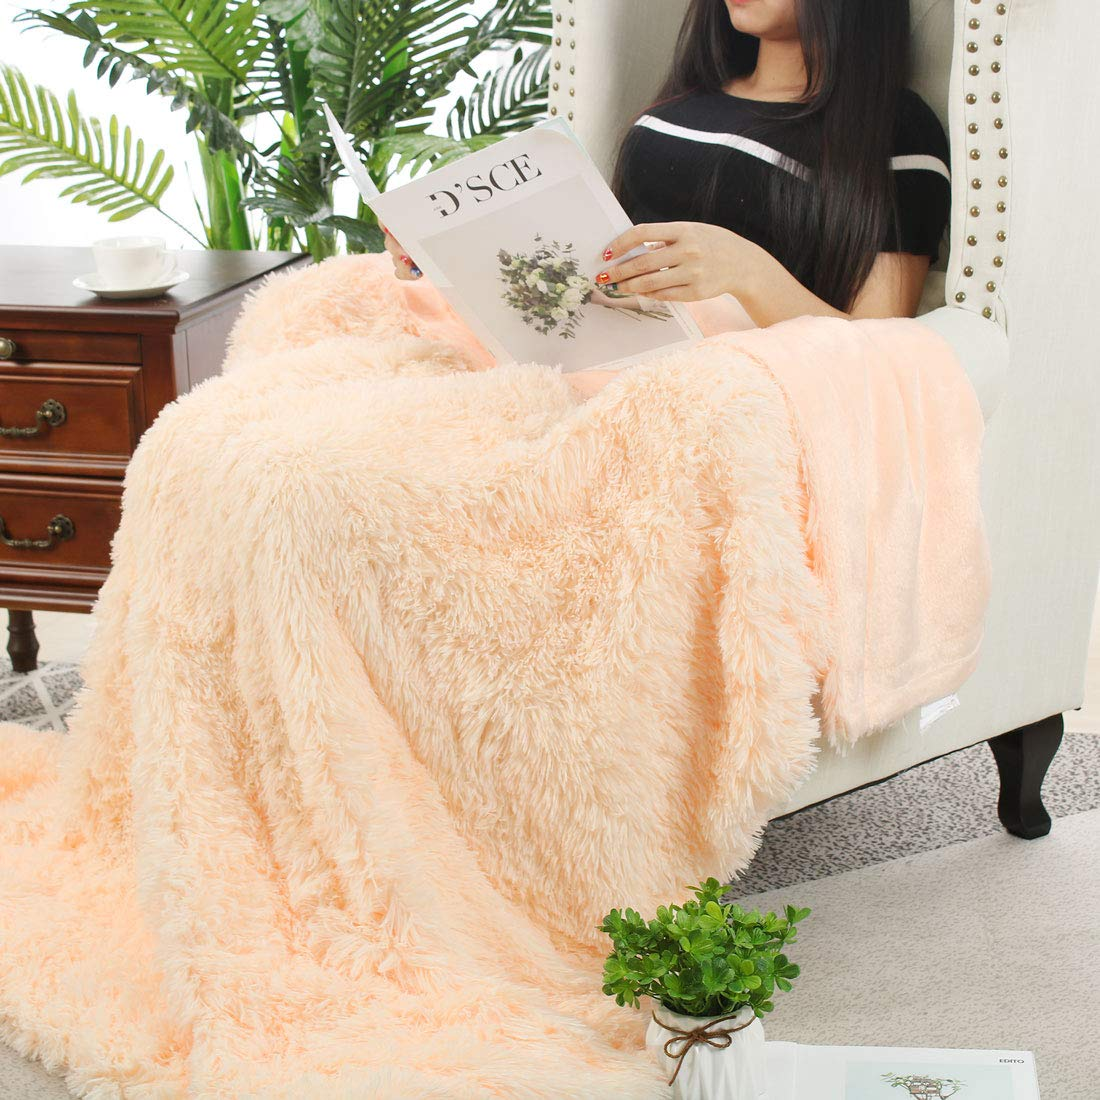 uxcell Solid Faux Fur Throw Blanket 50 x 60 Keep Warmth for Years,Royal Blue Decorative Fuzzy Long Shaggy Blankets Lightweight Long Fur Microfiber Fleece Blanket for Couch and Sofa